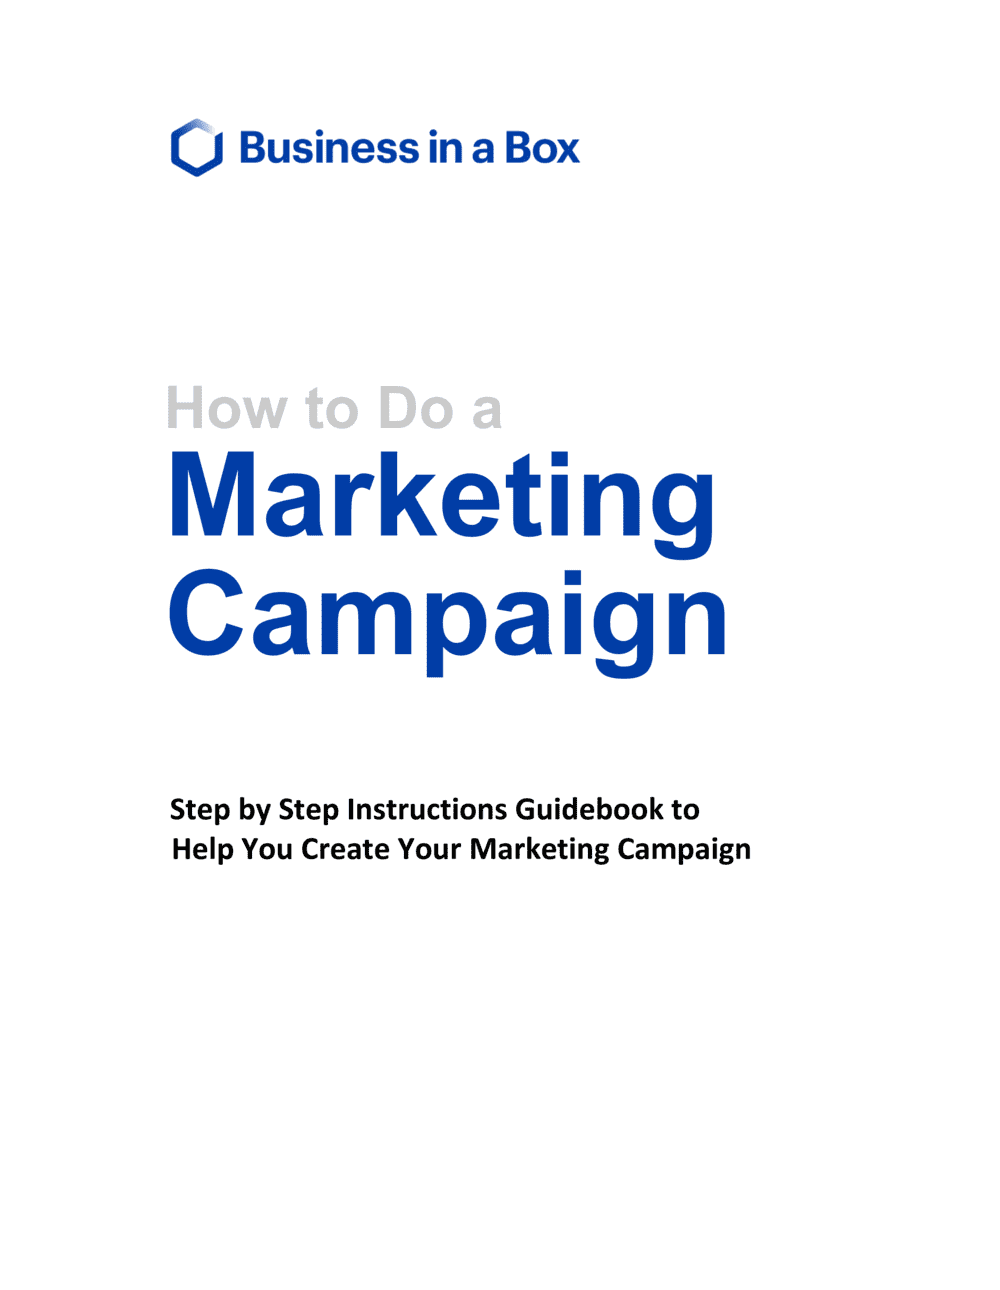 Business-in-a-Box's How To Do A Marketing Campaign Template